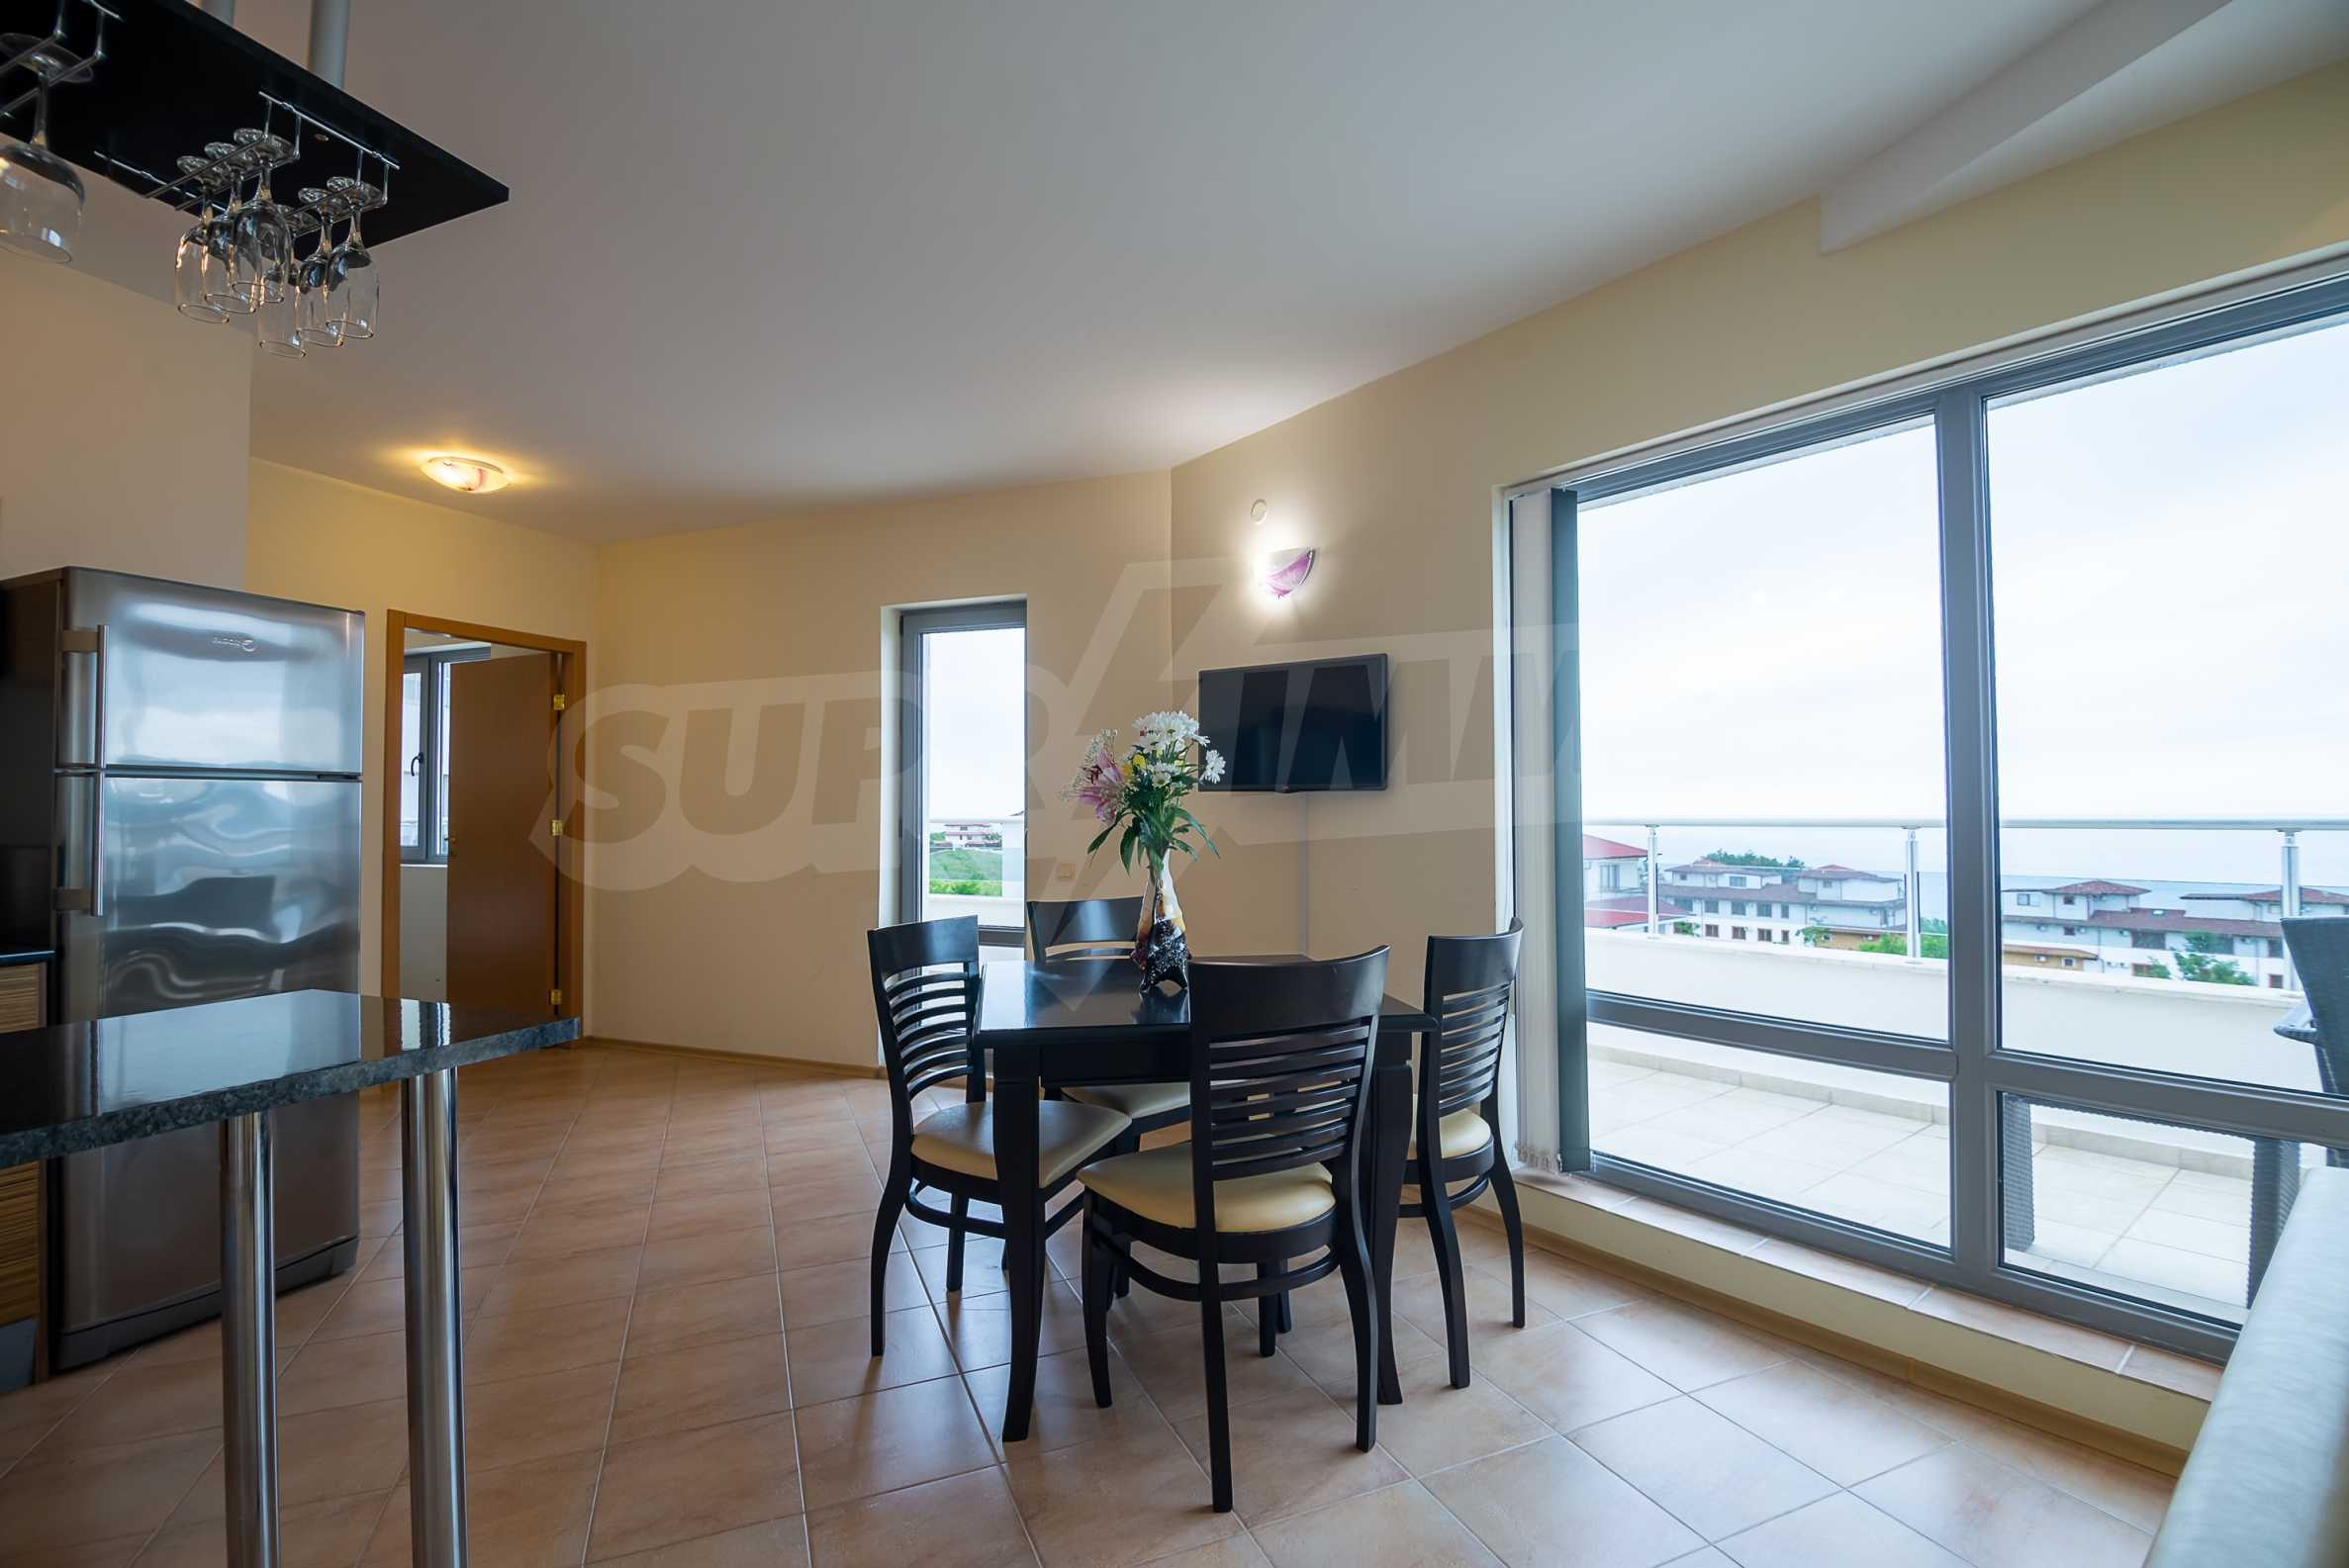 Penthouse Panorama - two-bedroom property overlooking the sea and the port 4